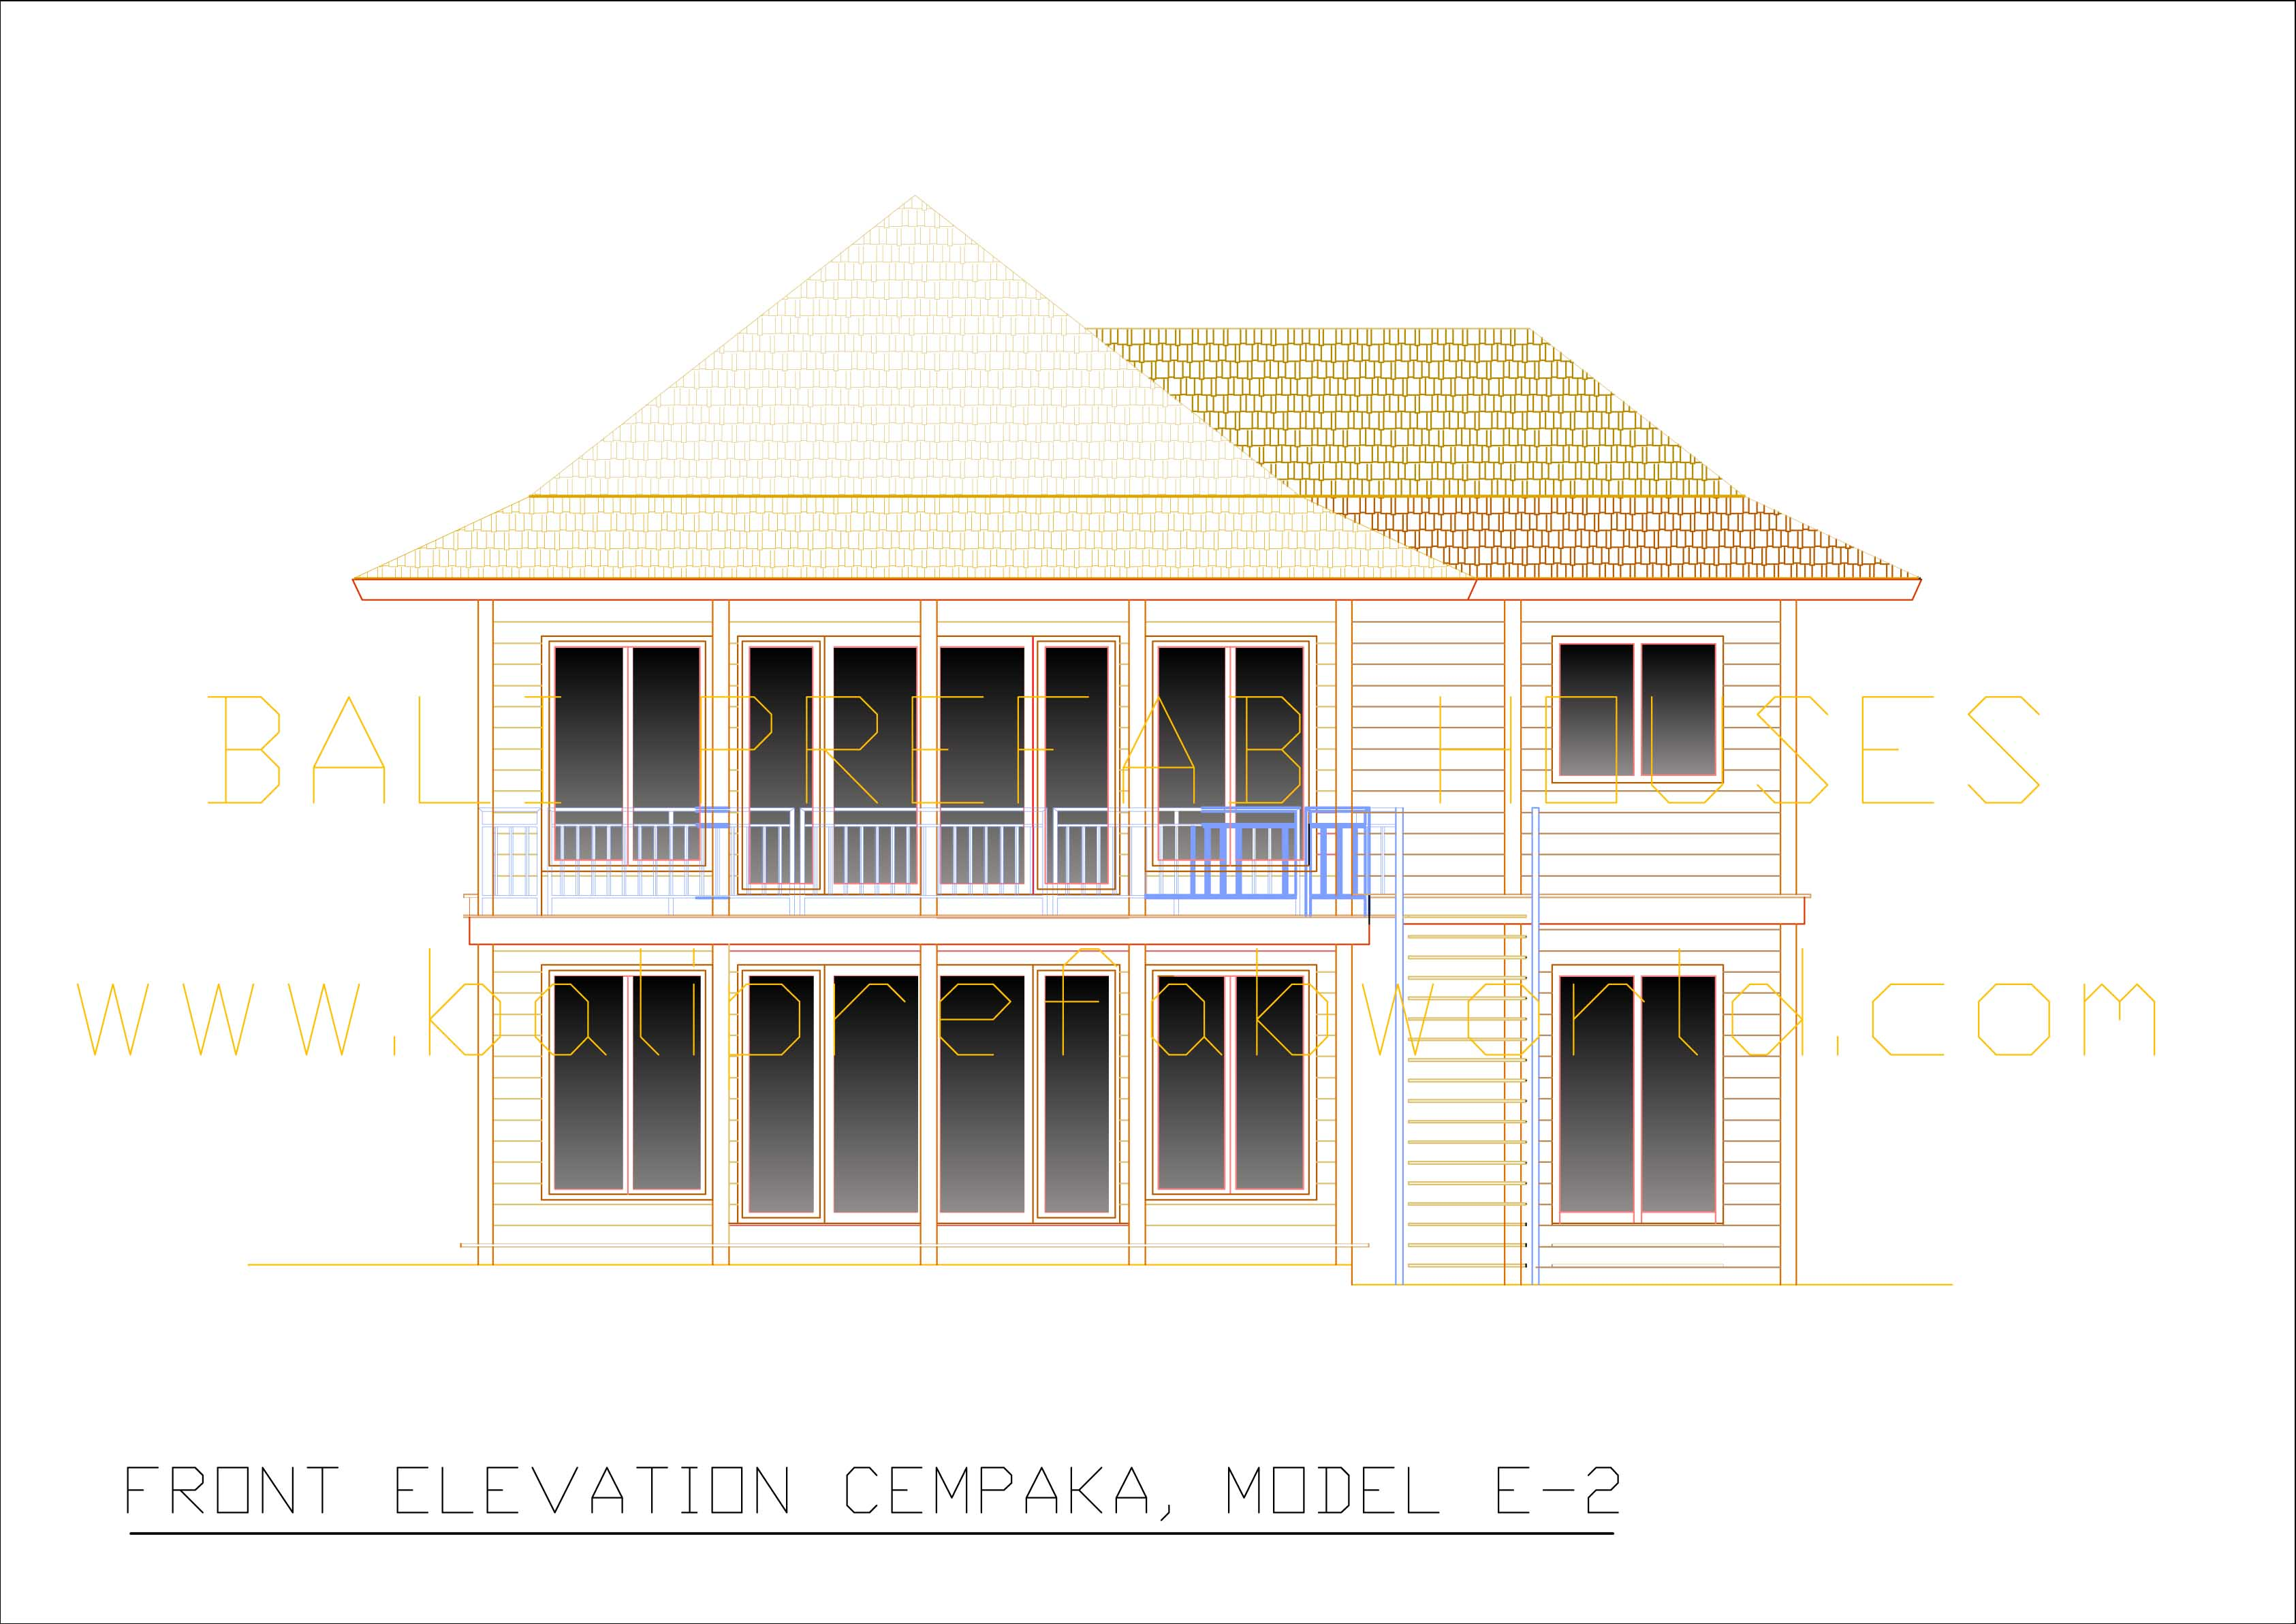 Cempaka front elevation